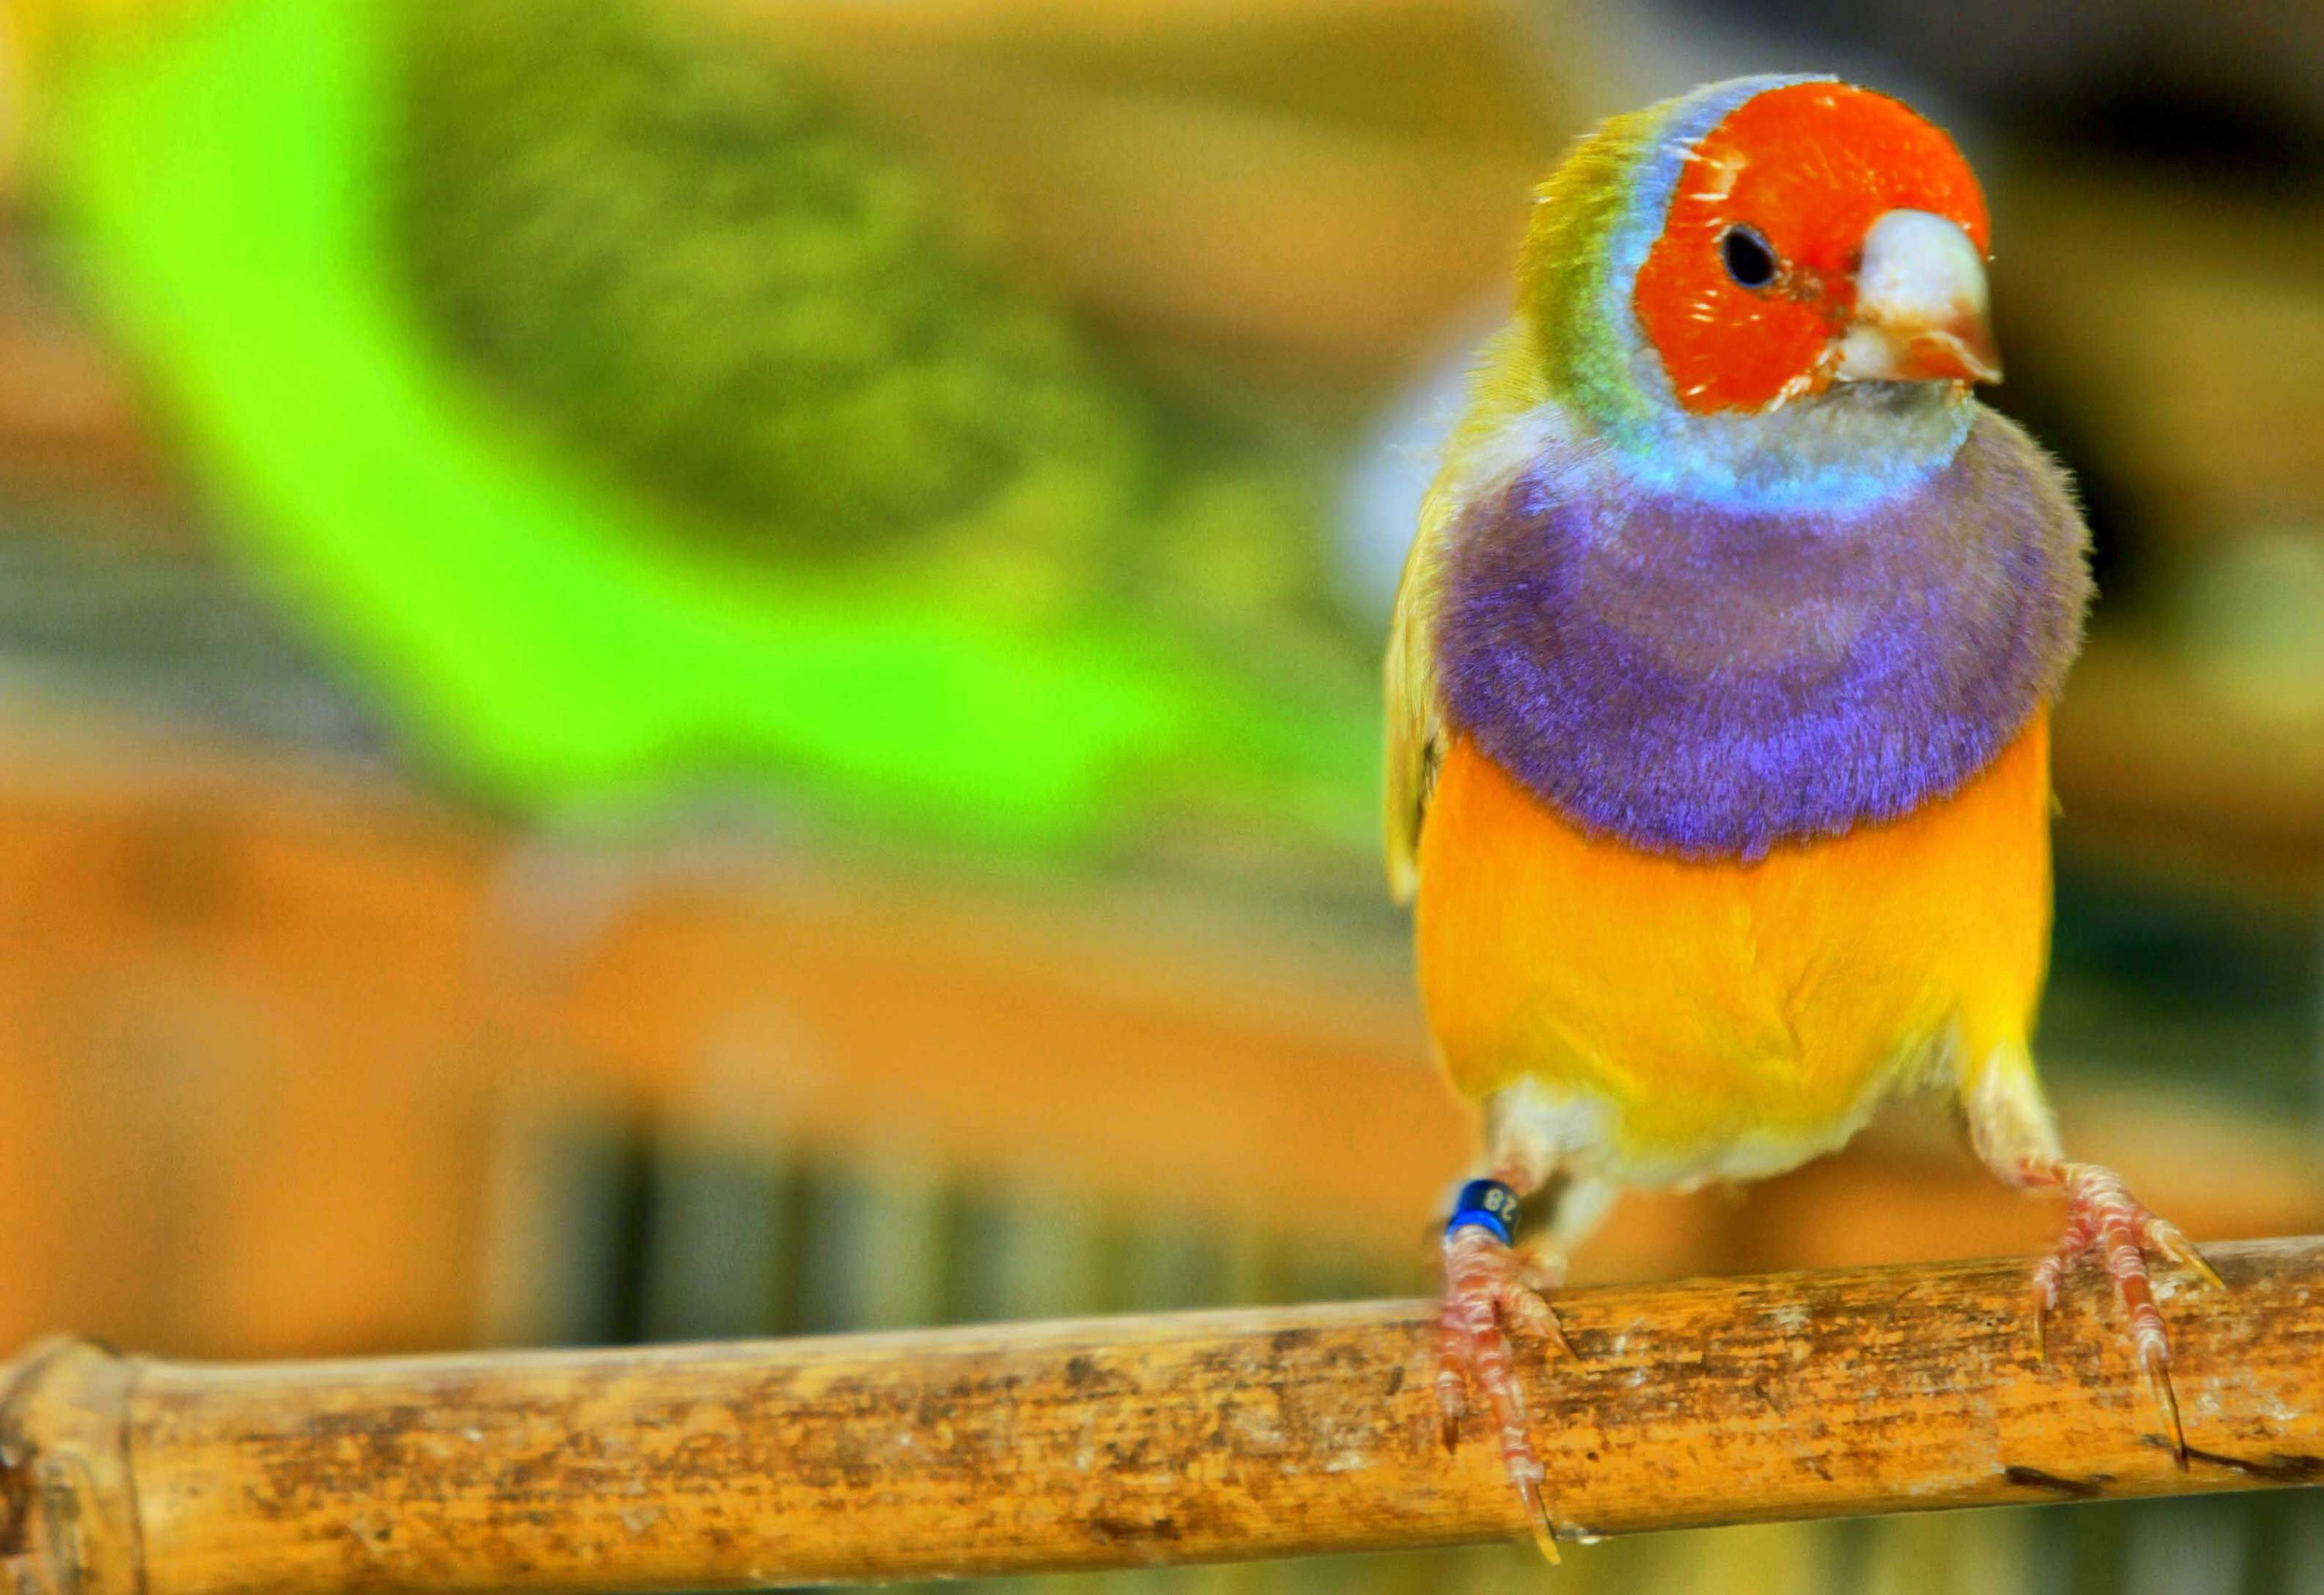 Picture Aves Exoticas